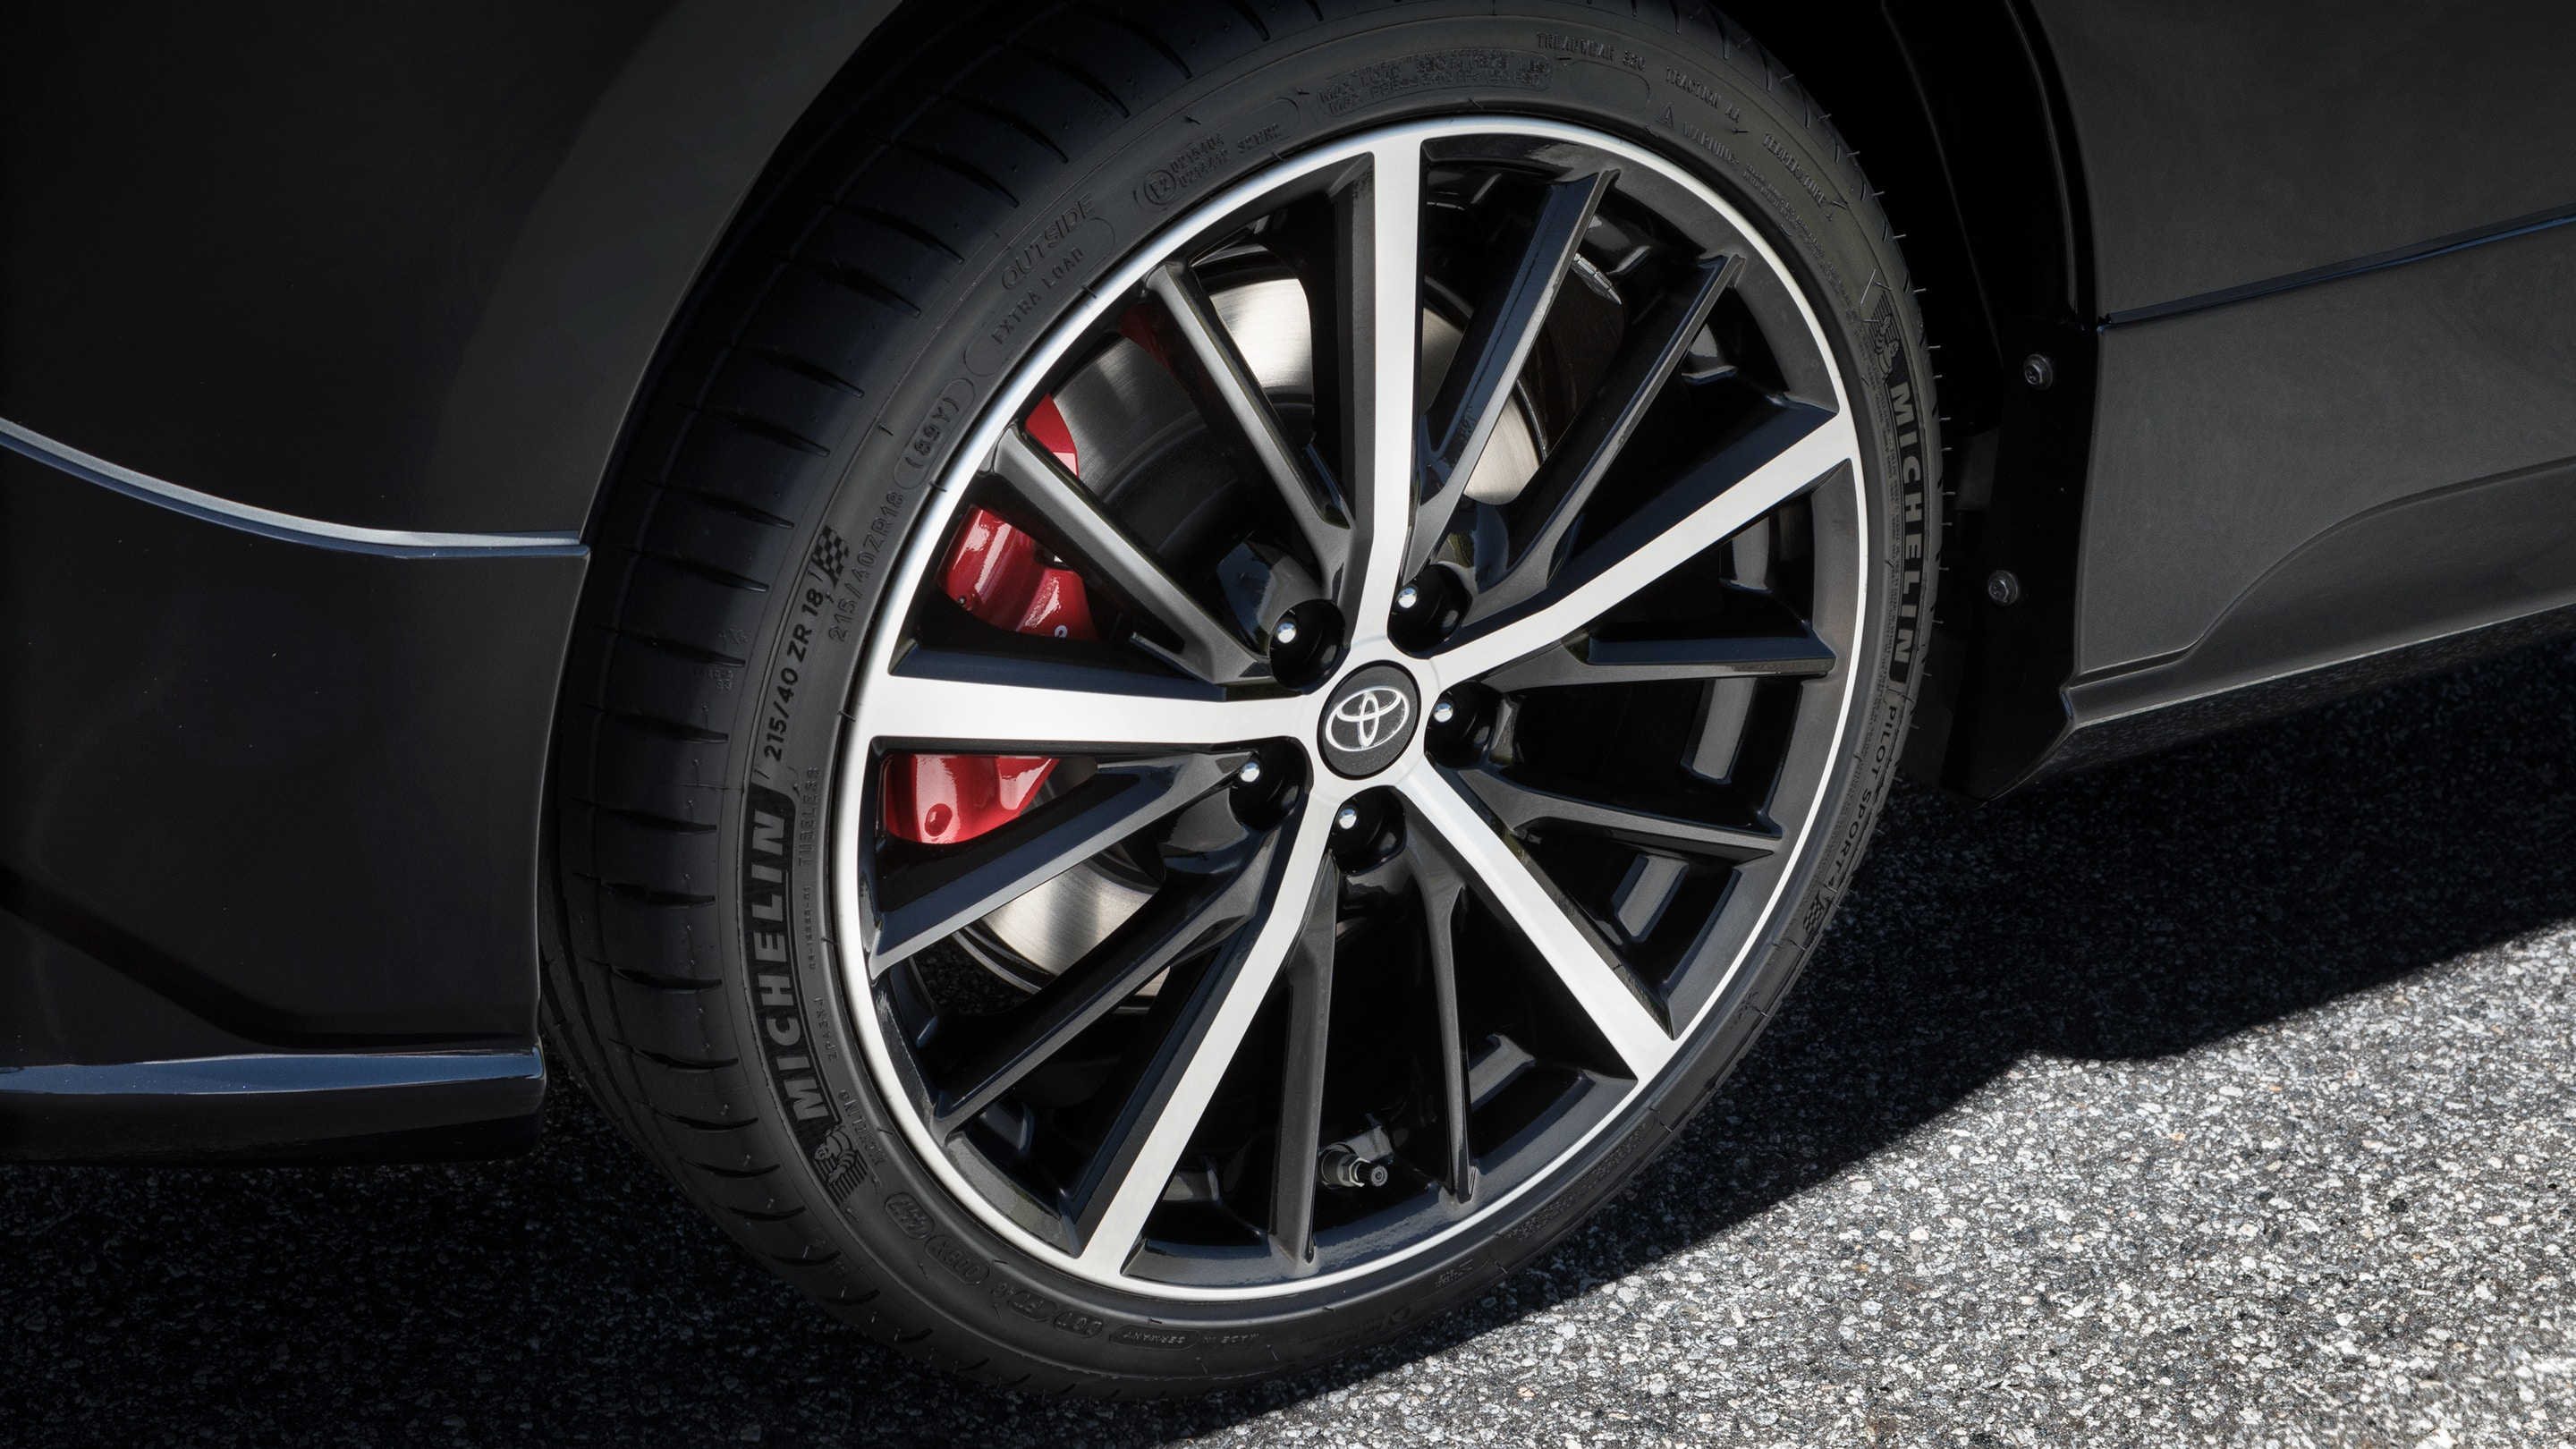 86 TRD Special Edition 18-in. Split-spoke Alloy Wheels